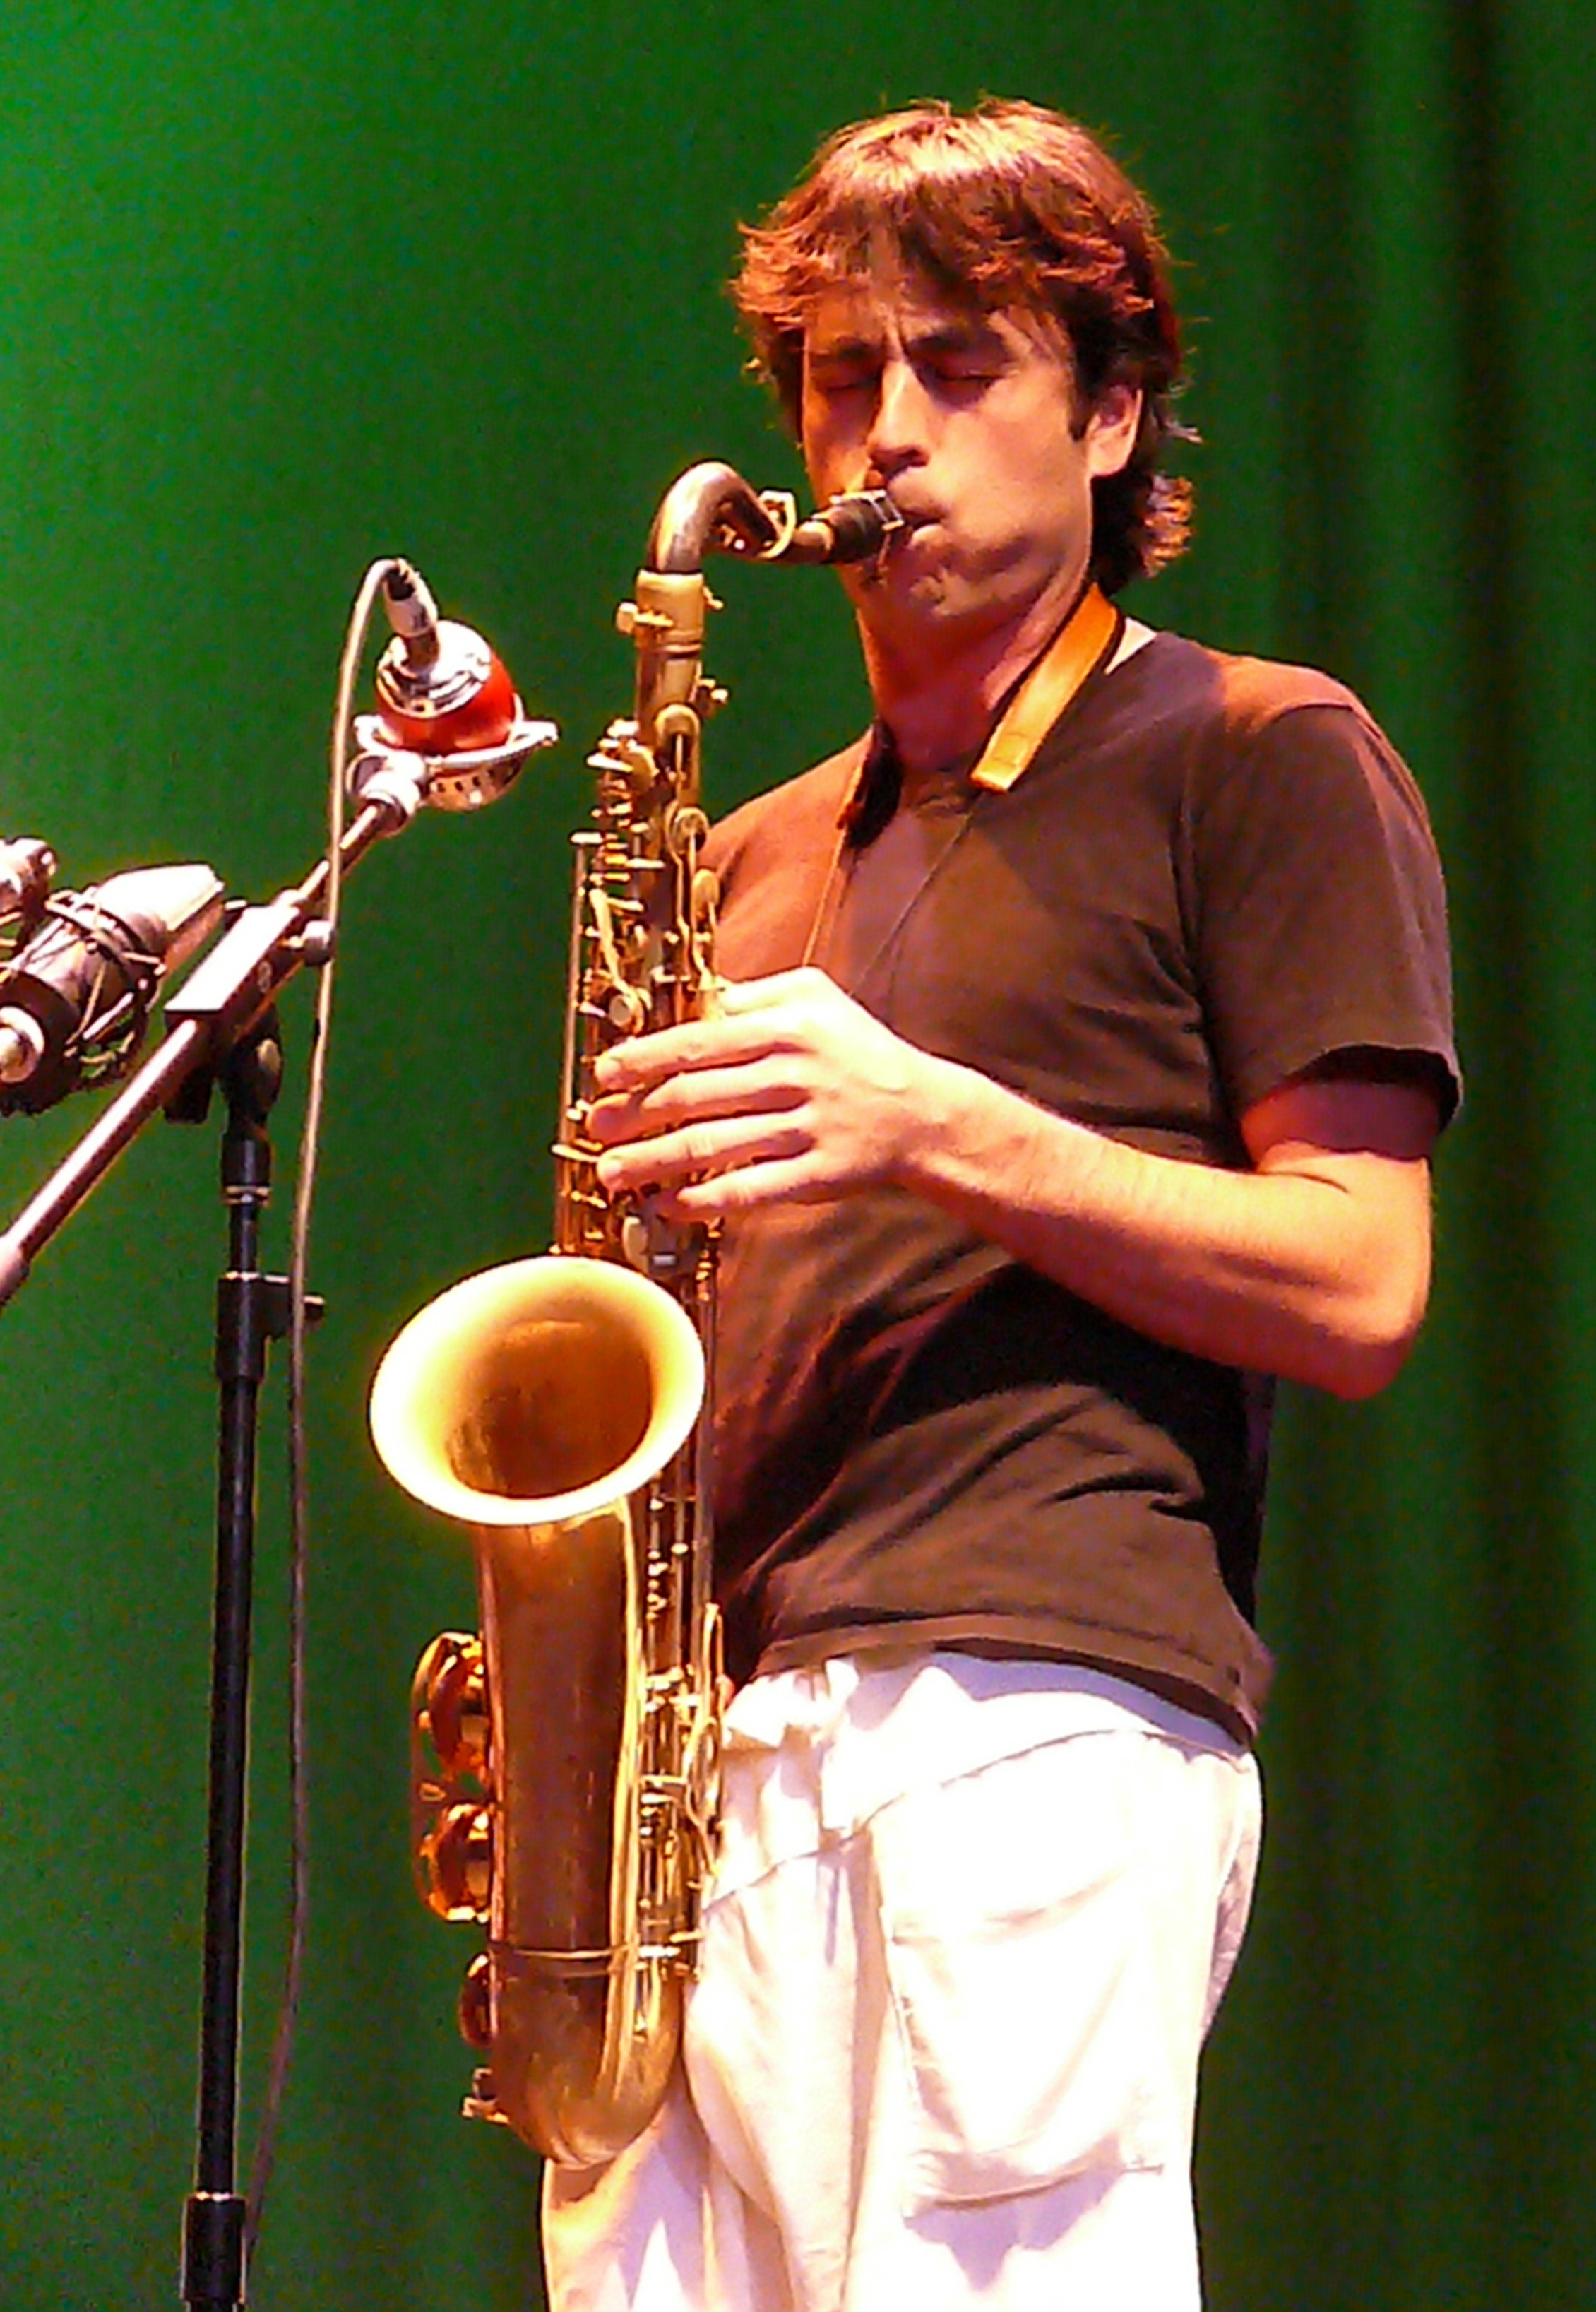 Lorenzo Sanguedolce at Vision Festival 2010